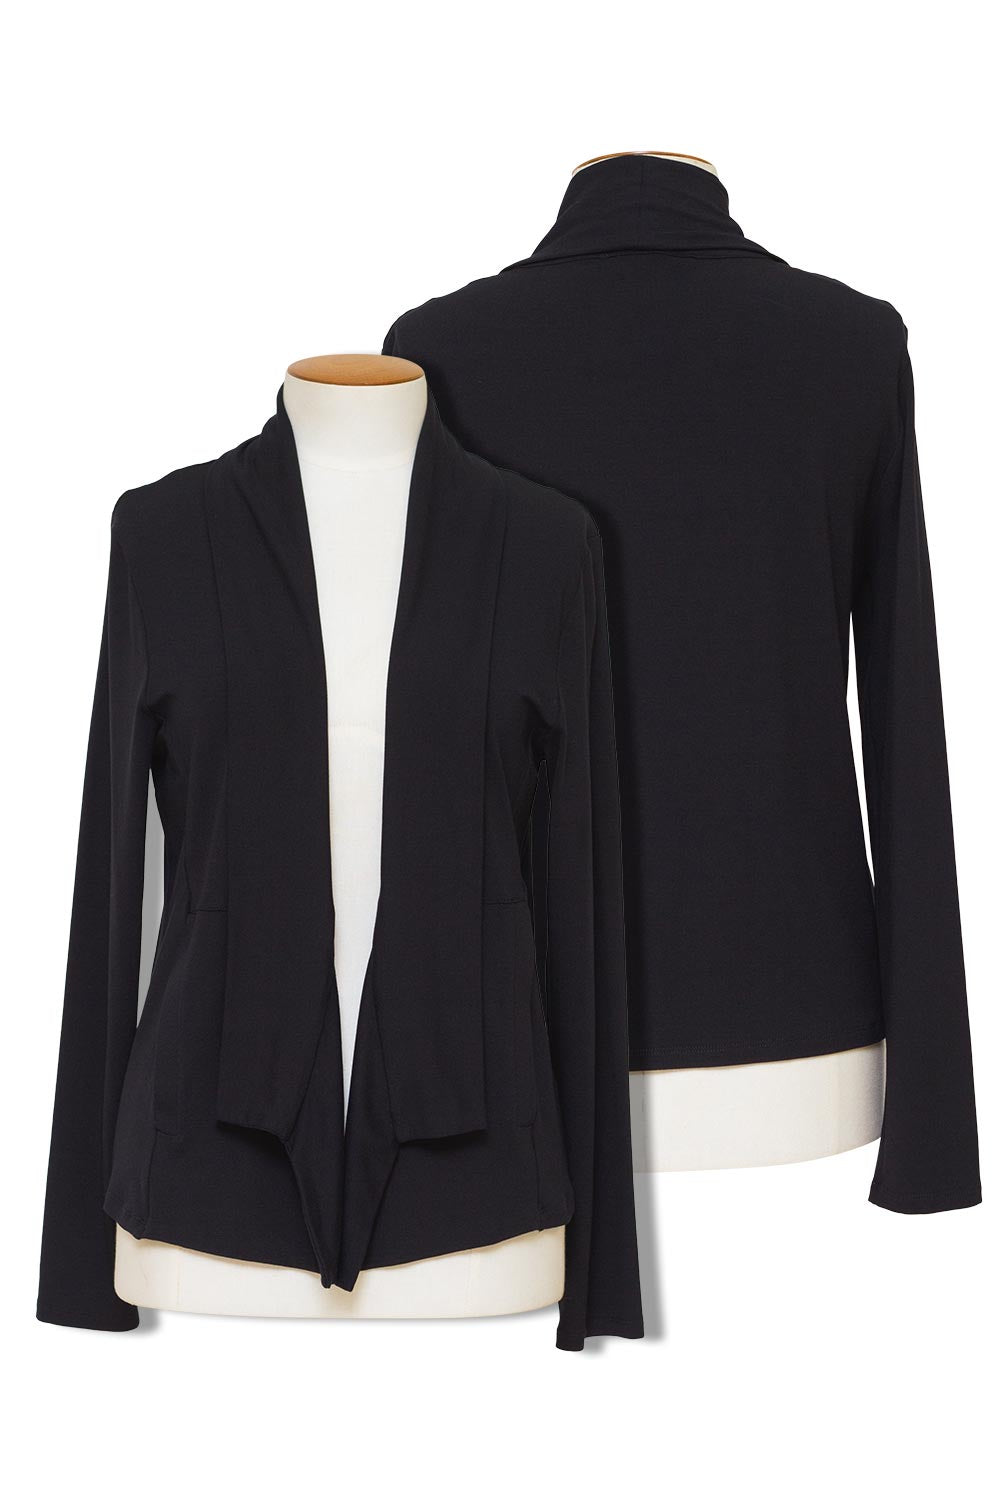 paula-ryan-soft-collar-cardigan